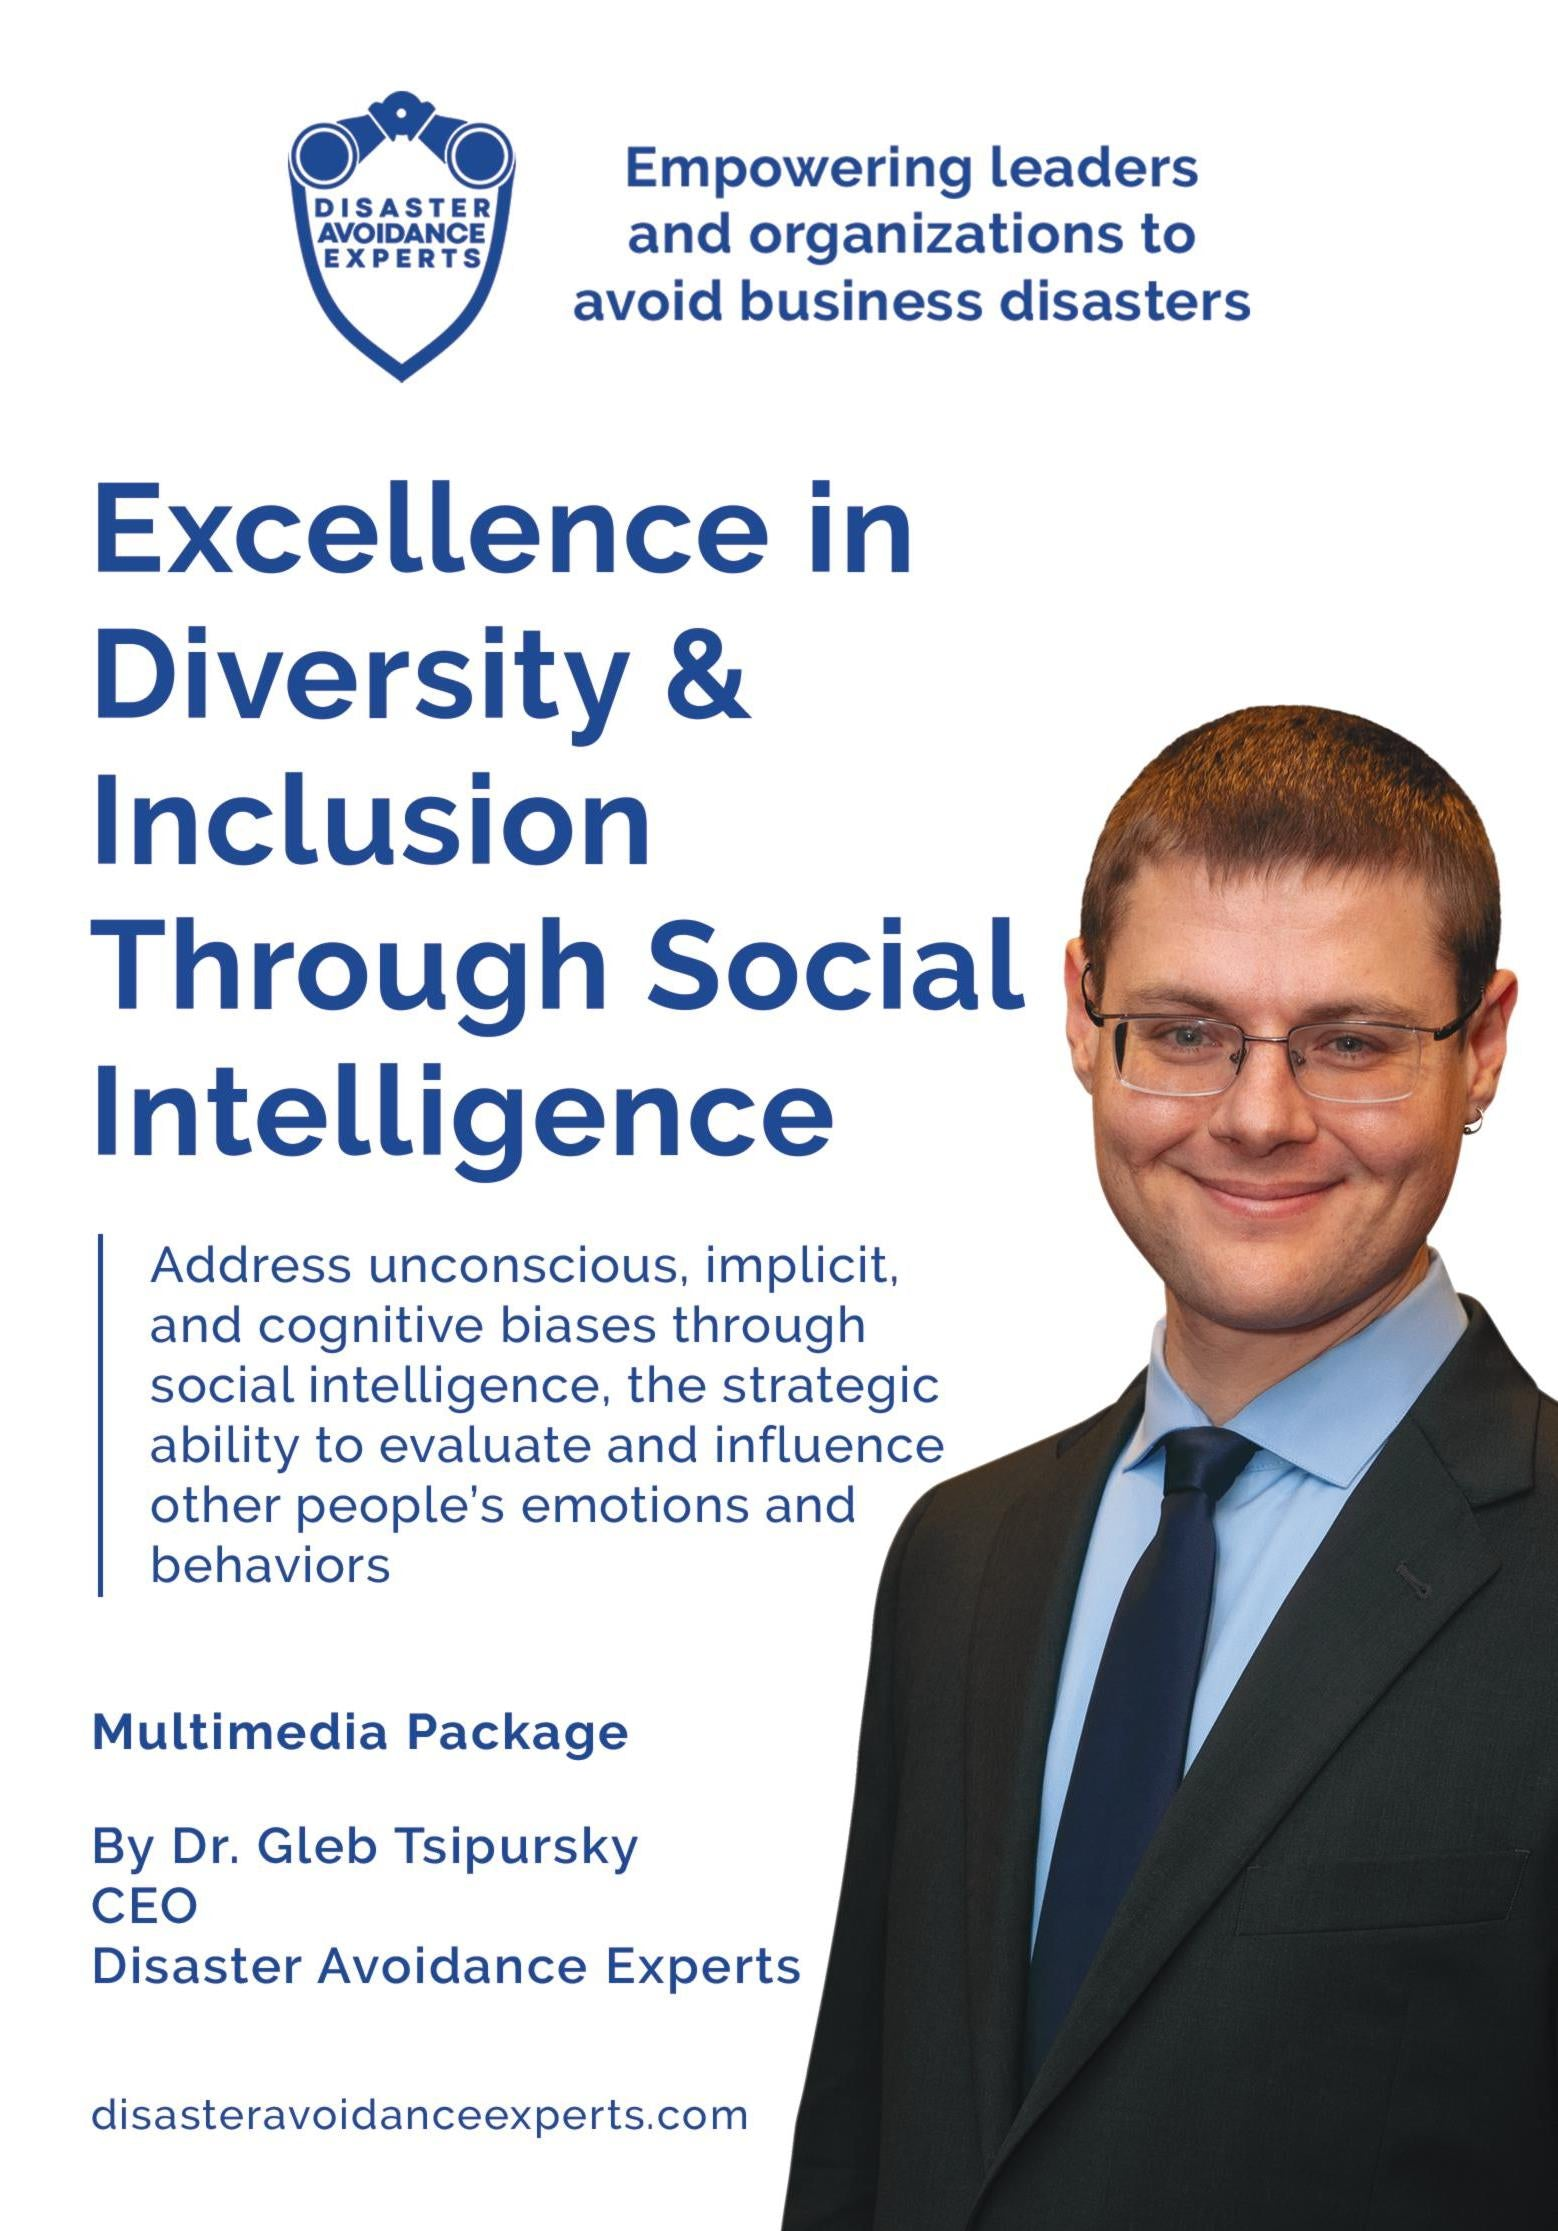 Multimedia Package: Excellence in Diversity & Inclusion Through Social Intelligence